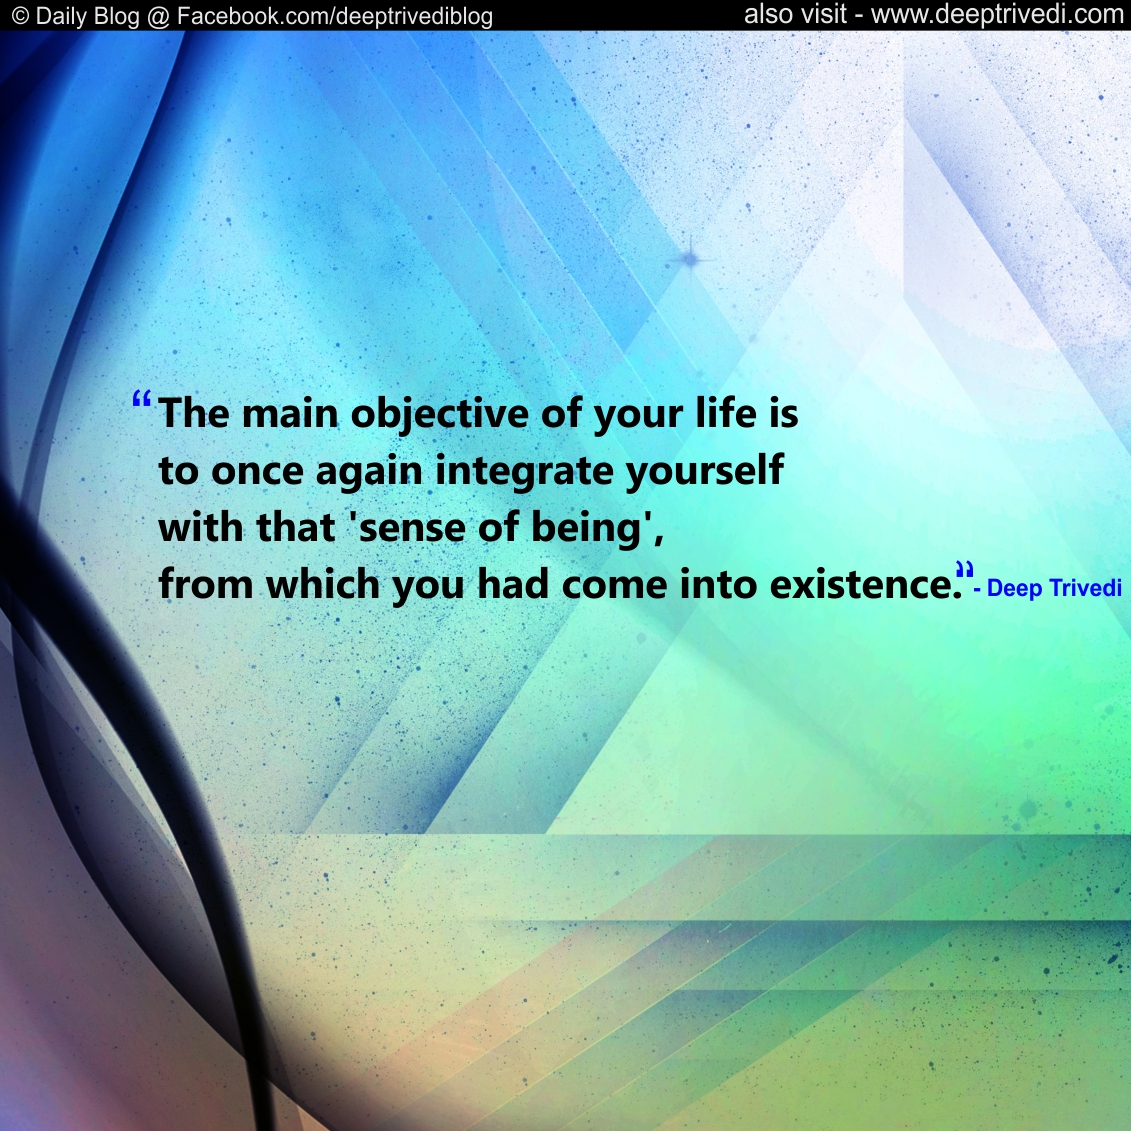 objective of your life